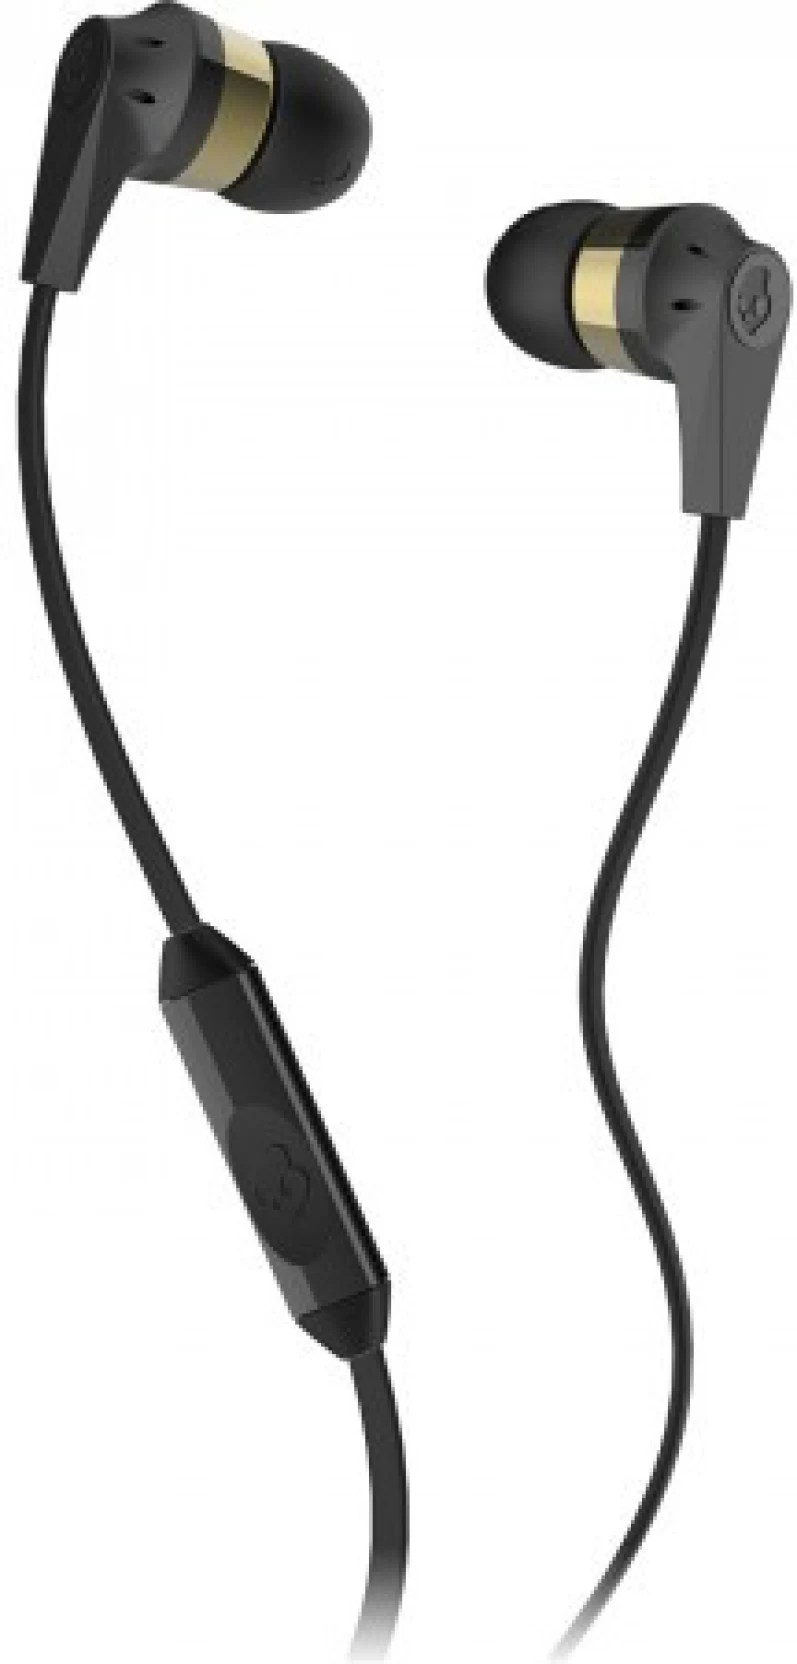 medium resolution of skullcandy s2ikdy 144 wired headset with mic gold black in the ear